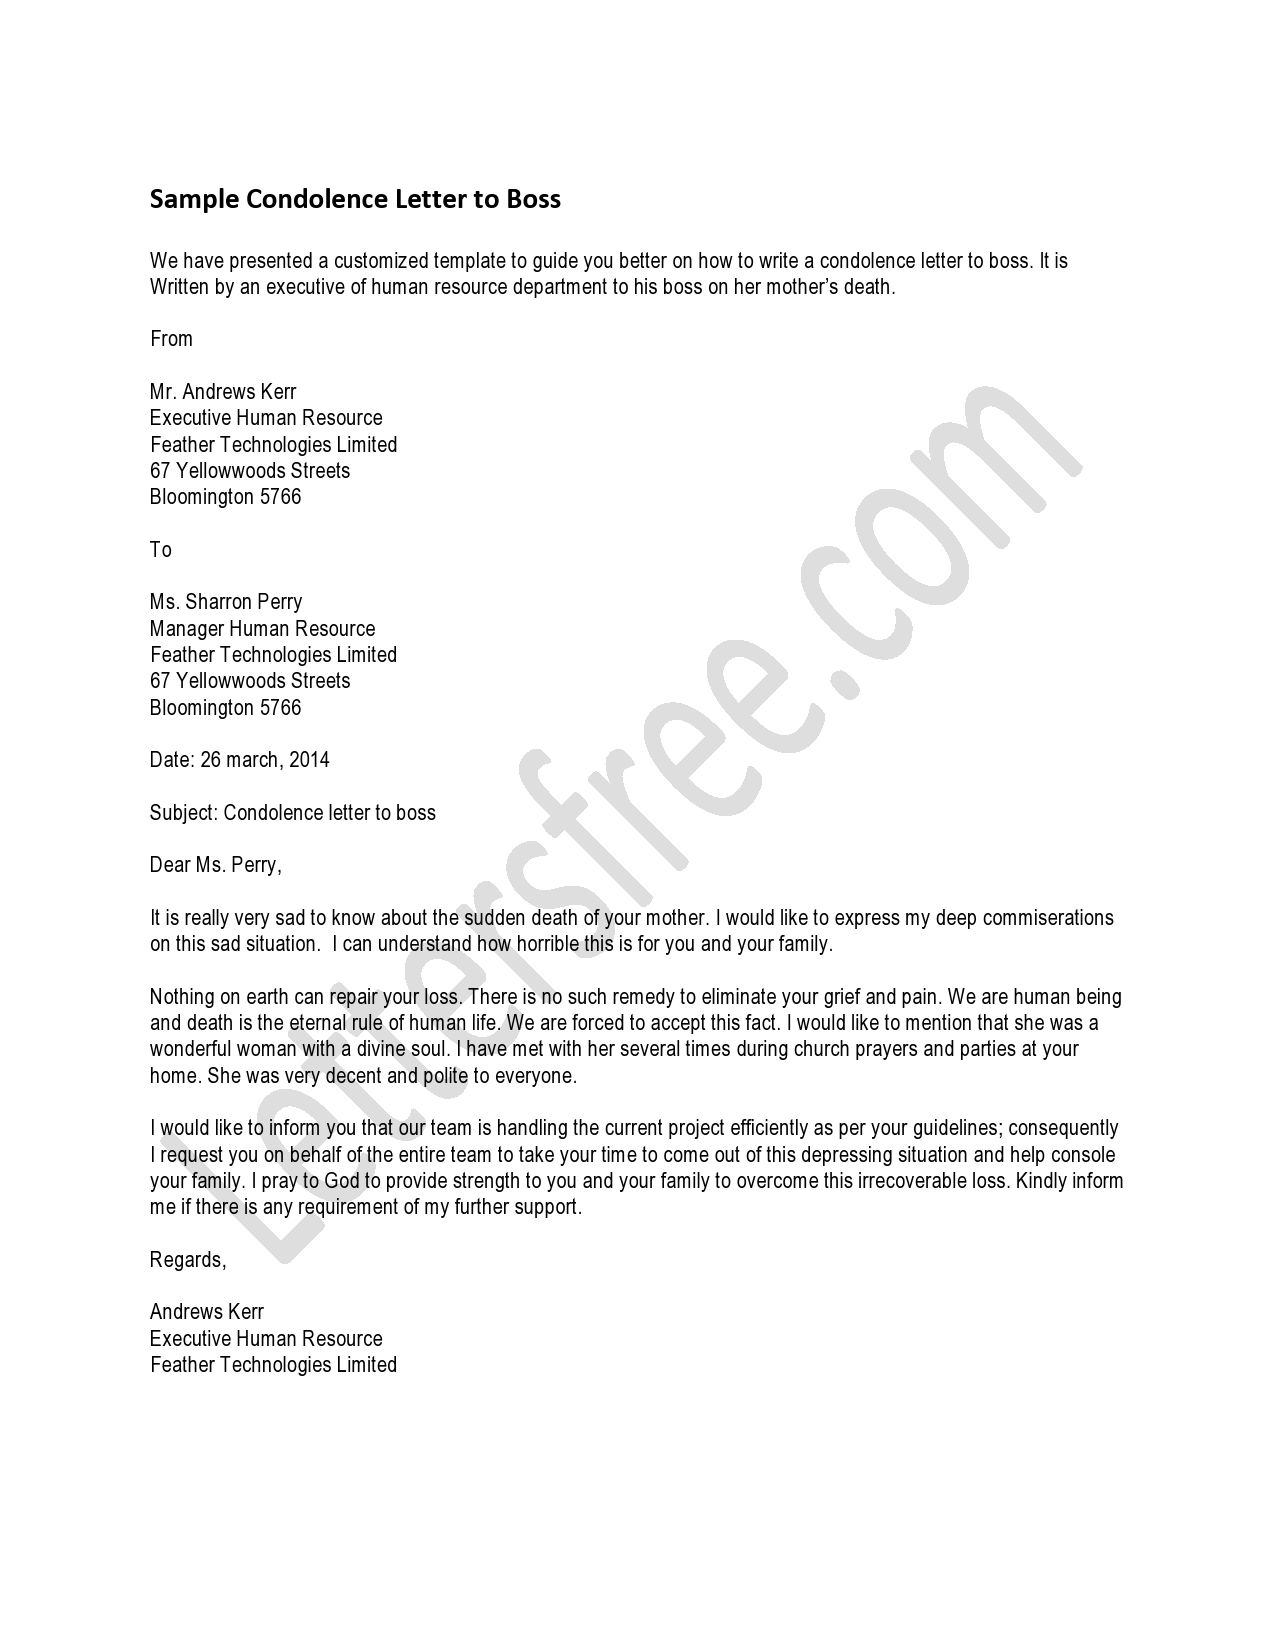 Grief Letter Template - You Can Read the Sample Letter for A Condolence Letter that You